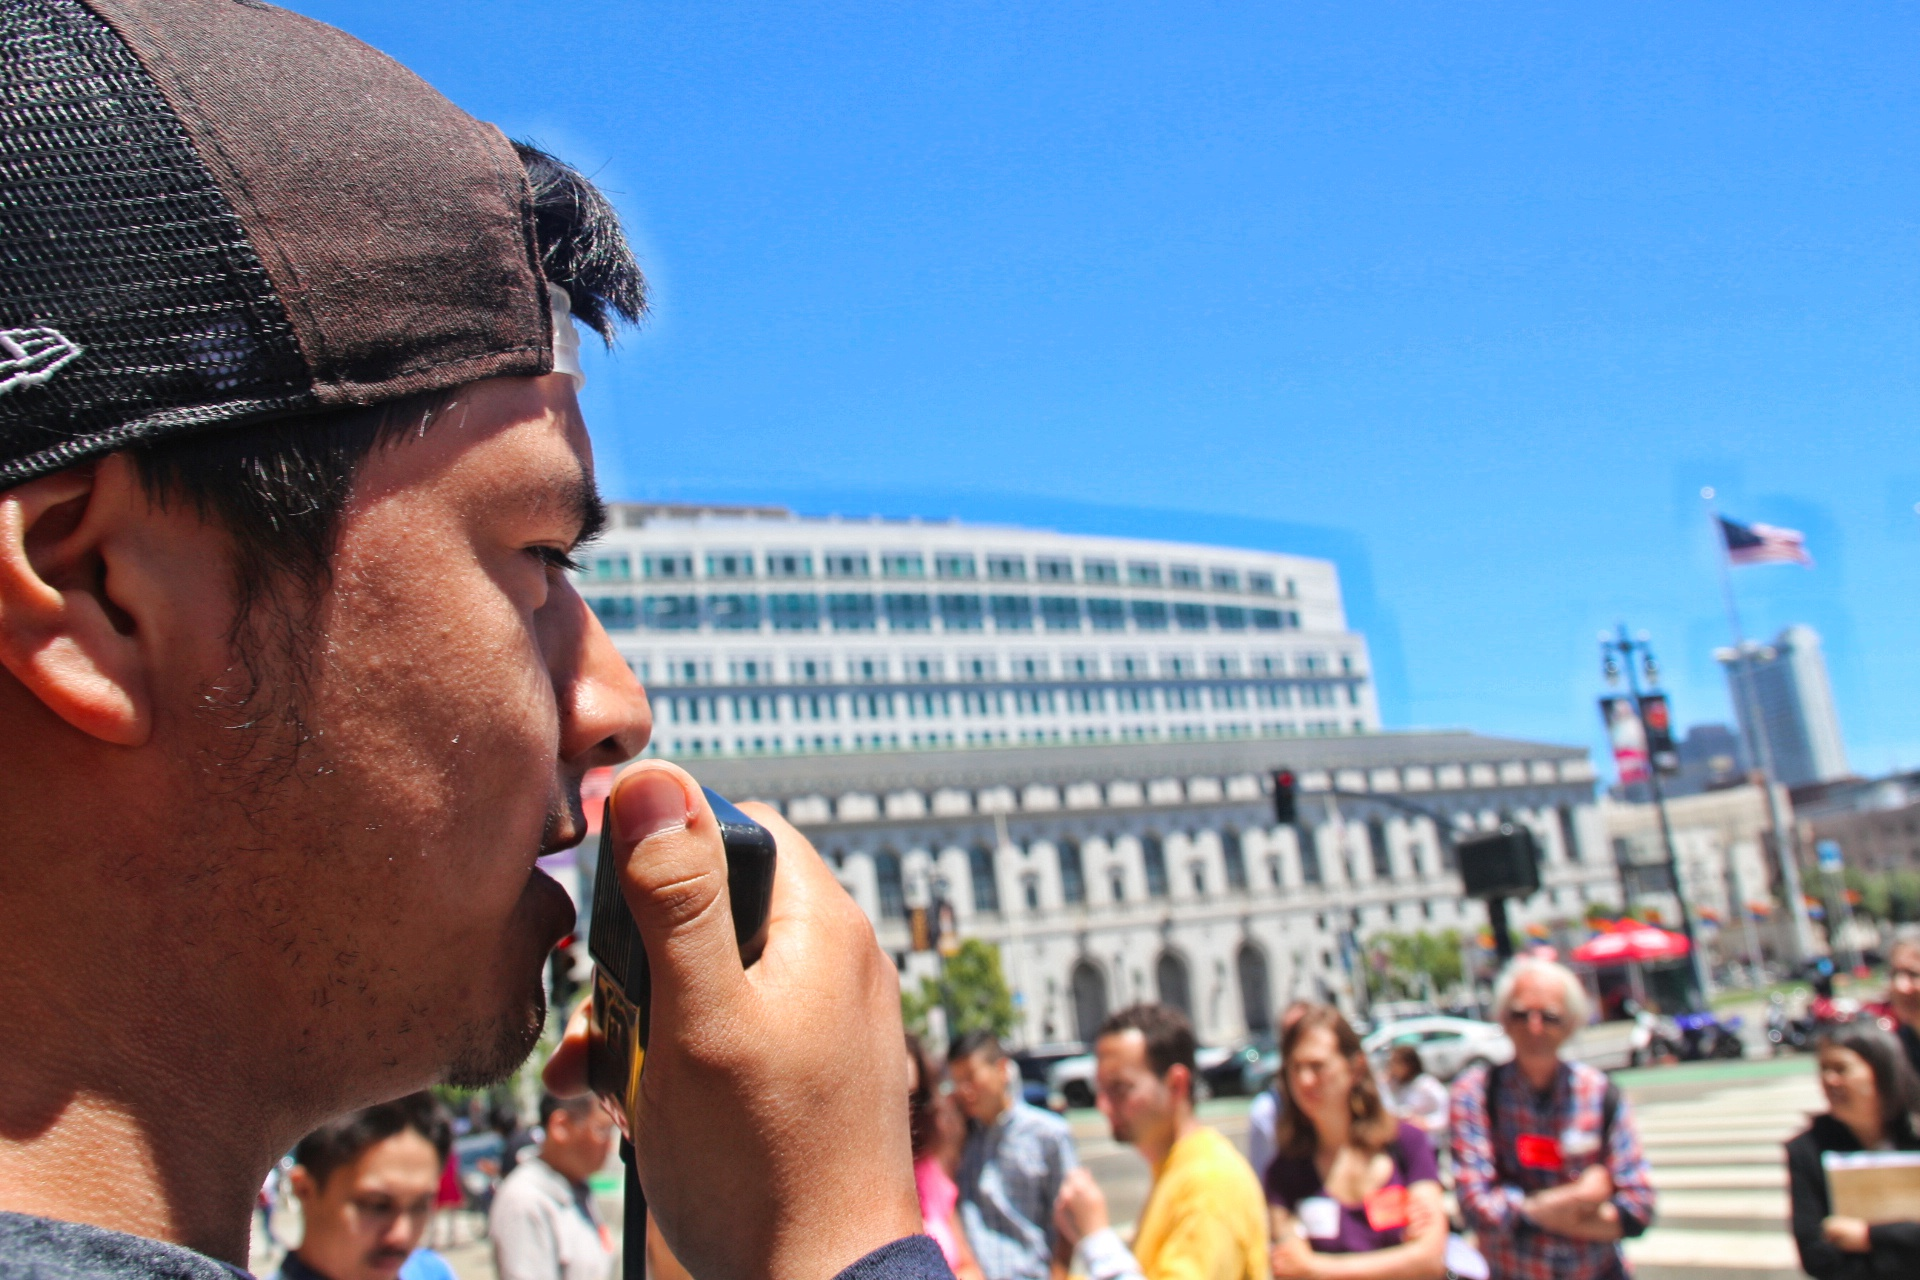 Daniel C, born and raised in the mission, speaks to a group outside City Hall. Photo by Sana Saleem.